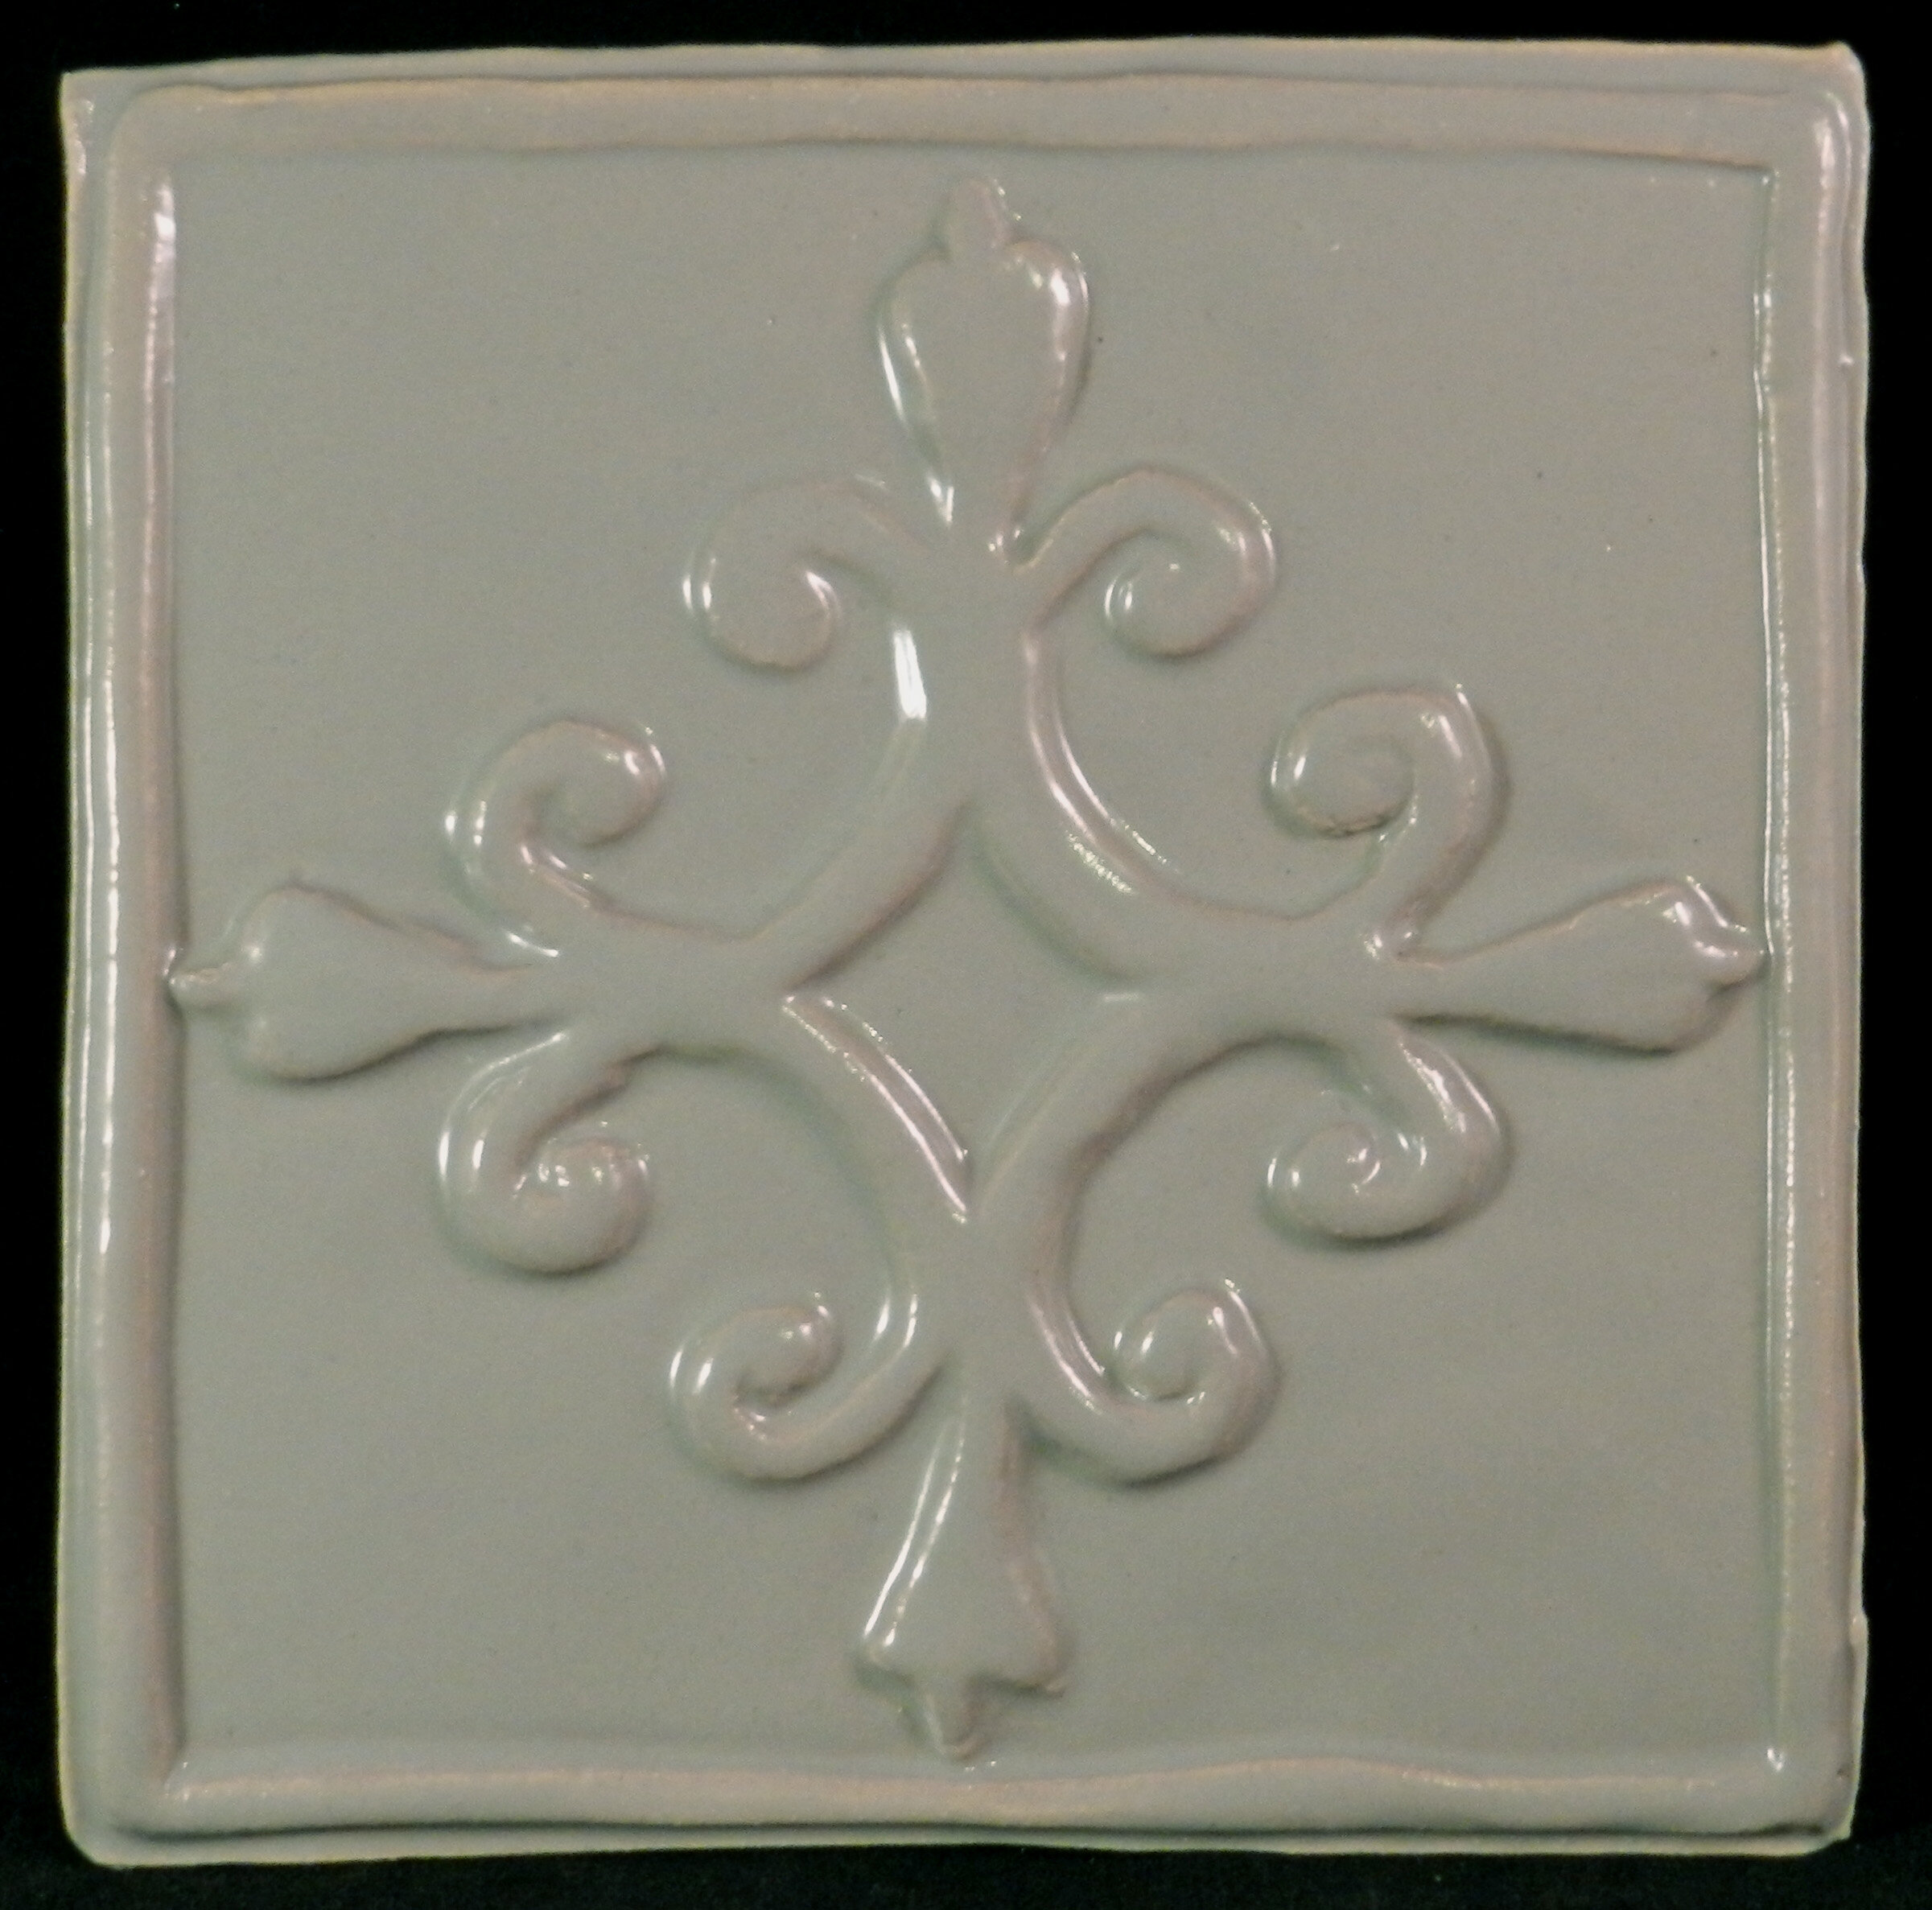 Clay Decor French Quarter X Ceramic Decorative Accent Tile In - 6x6 accent tiles